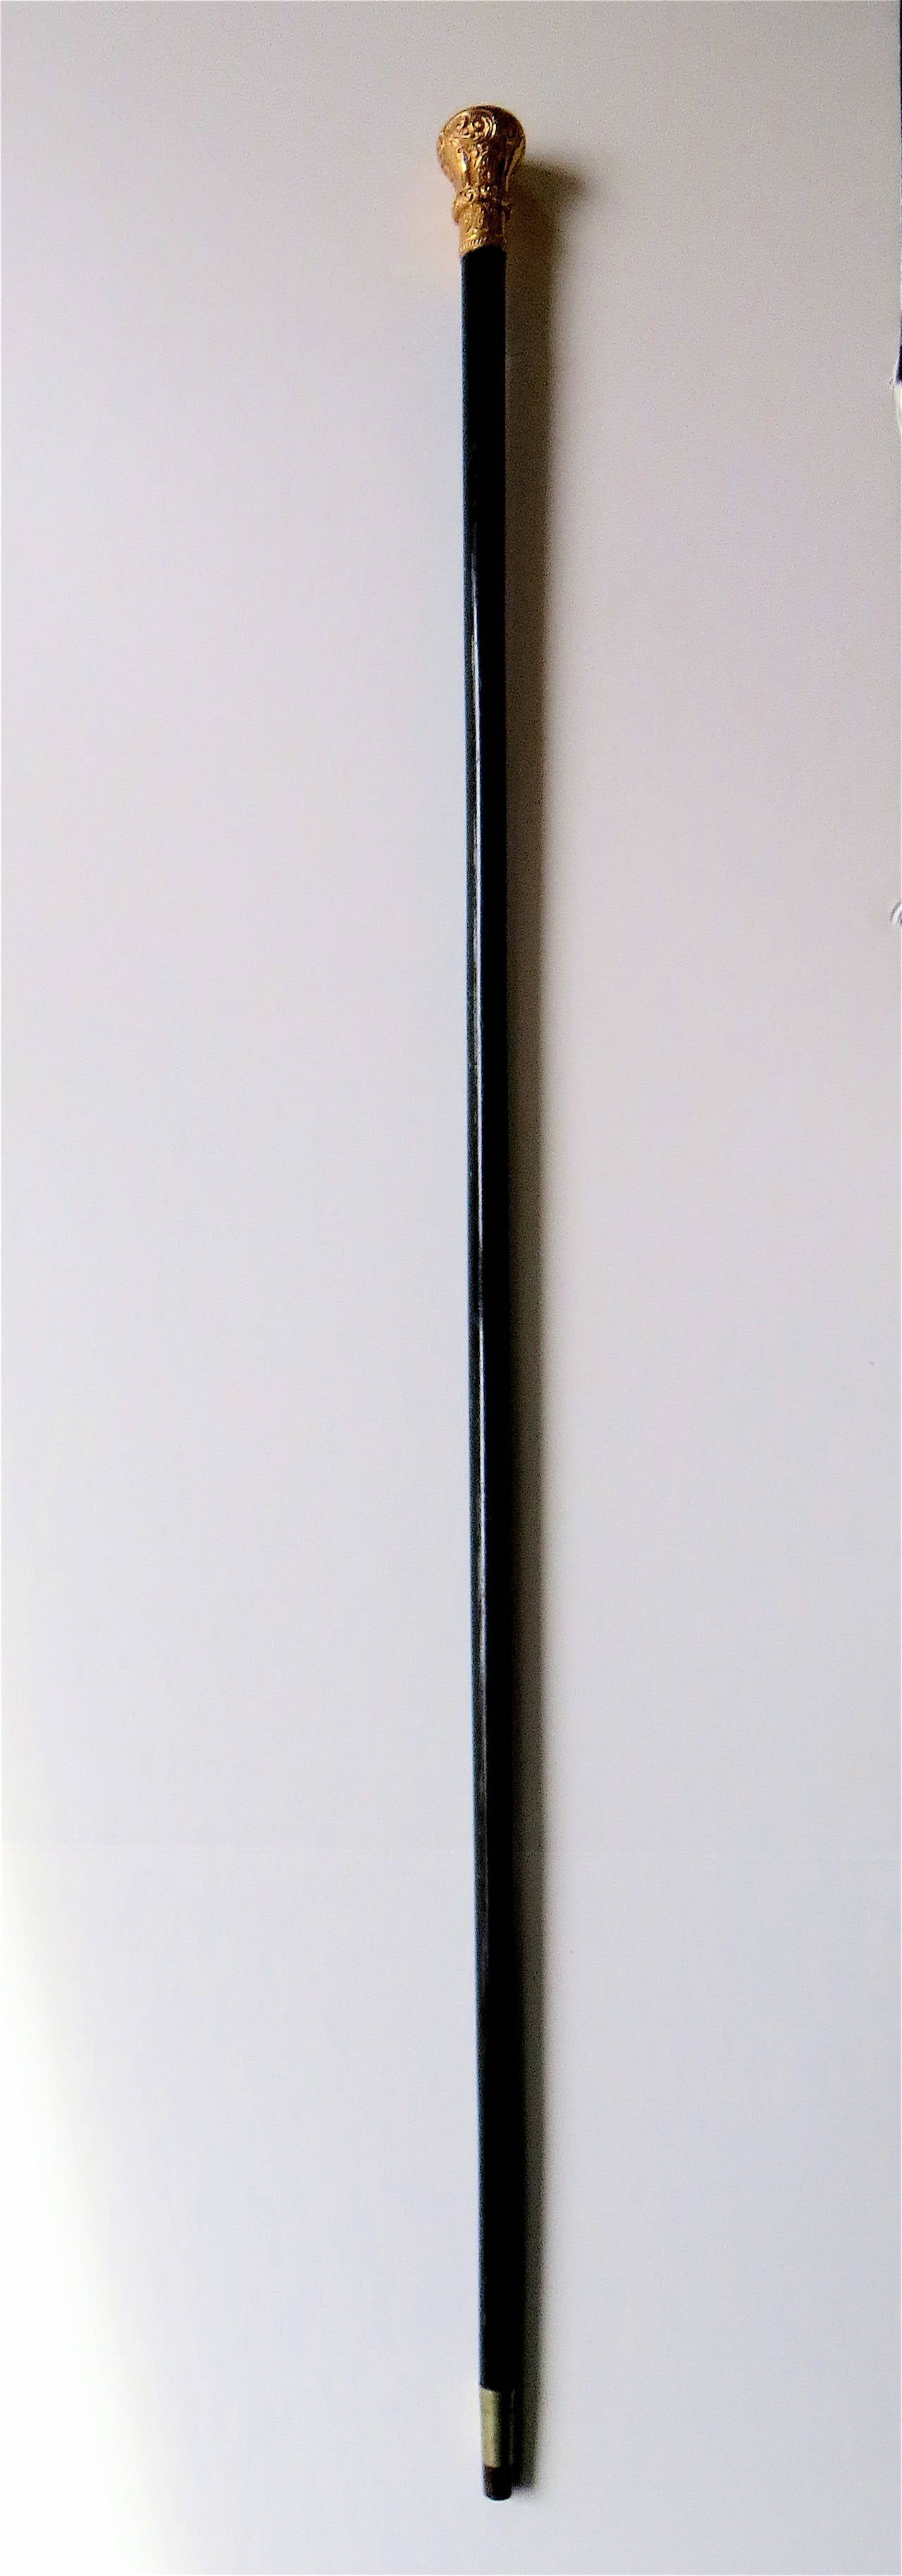 American Walking Stick or Cane with 14k Gold Top, circa 1906